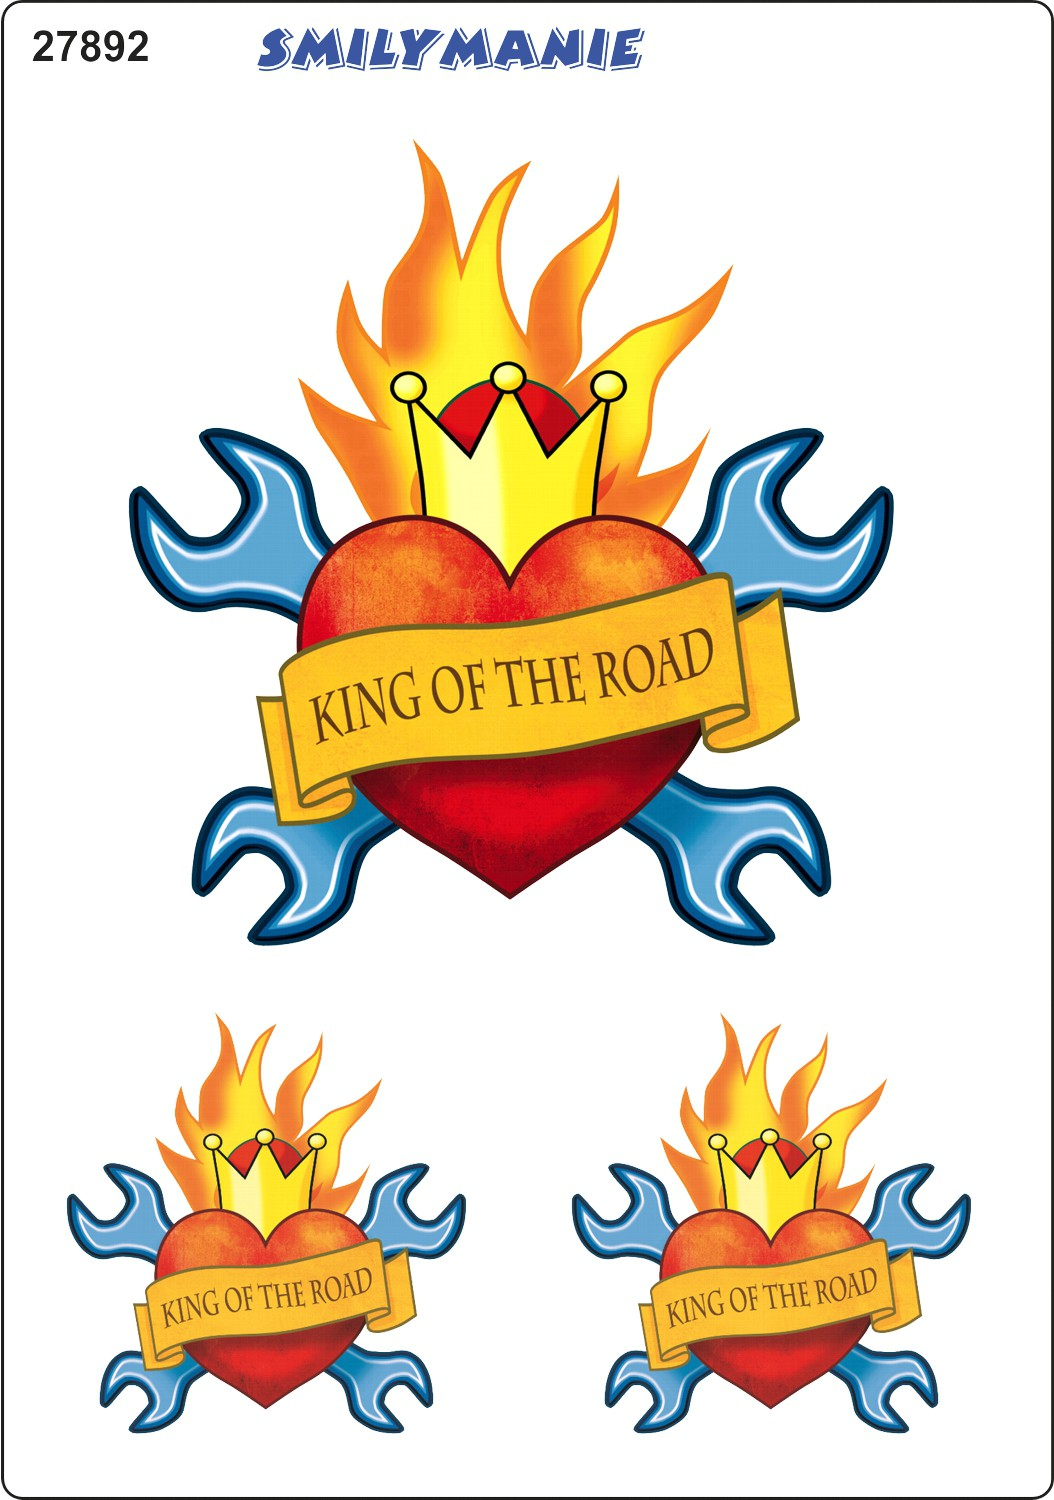 Sticker heart King of the road set of 3 150 x 105 mm